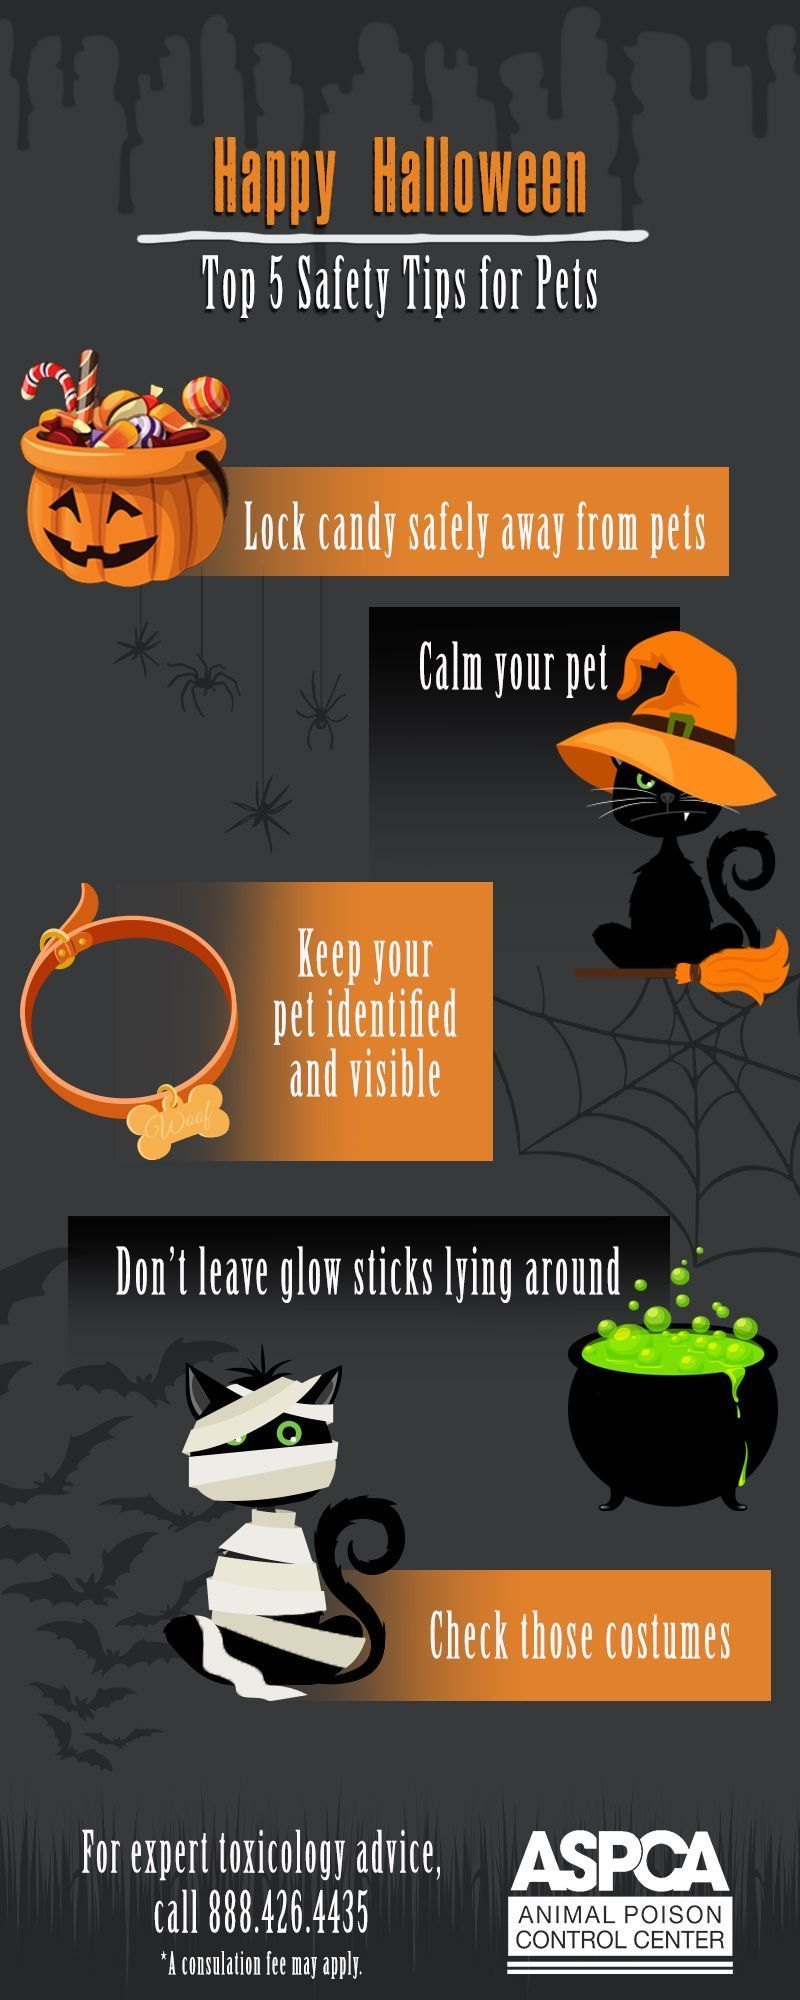 Tips on Costumes, Candy and Celebrating Safely With Your